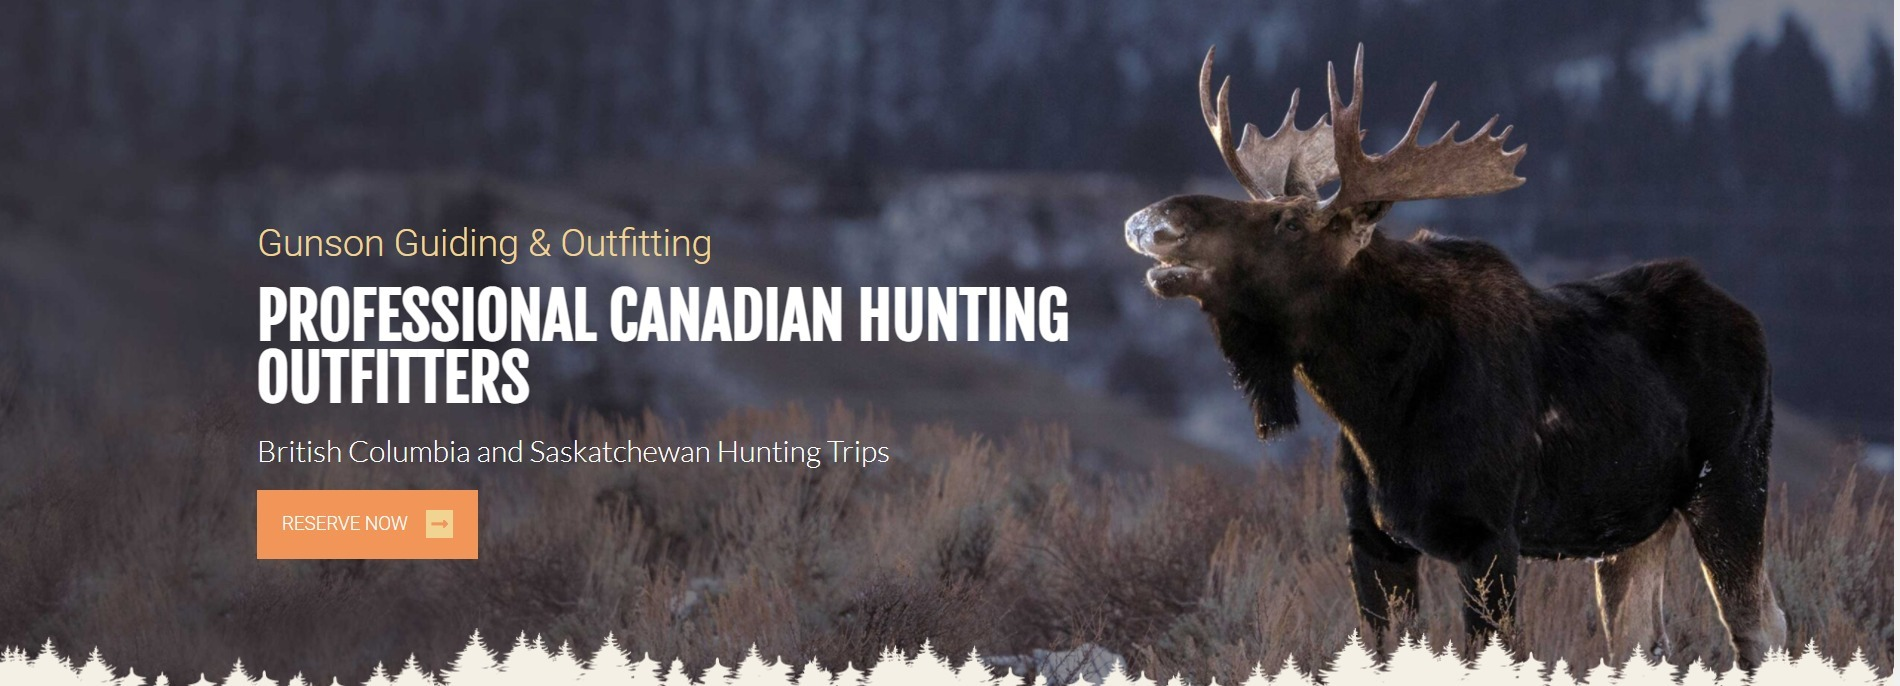 Gunson Guiding and Outfitting (@ggoutfitting) Cover Image